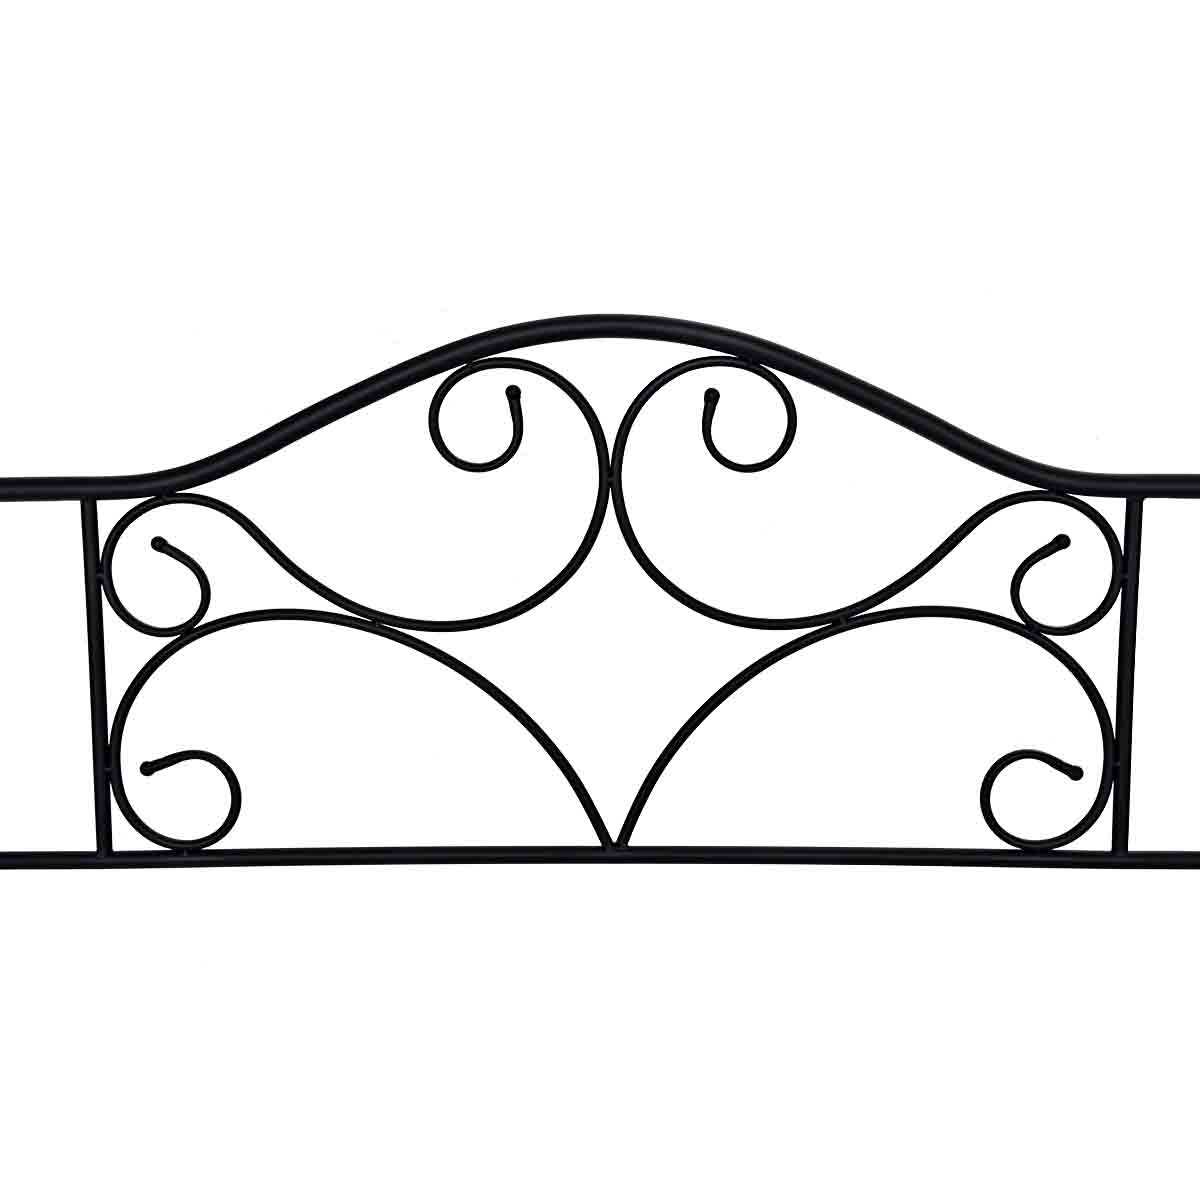 Queen Size Steel Bed Frame Platform Stable Metal Slats Headboard Footboard Black - image 3 de 7